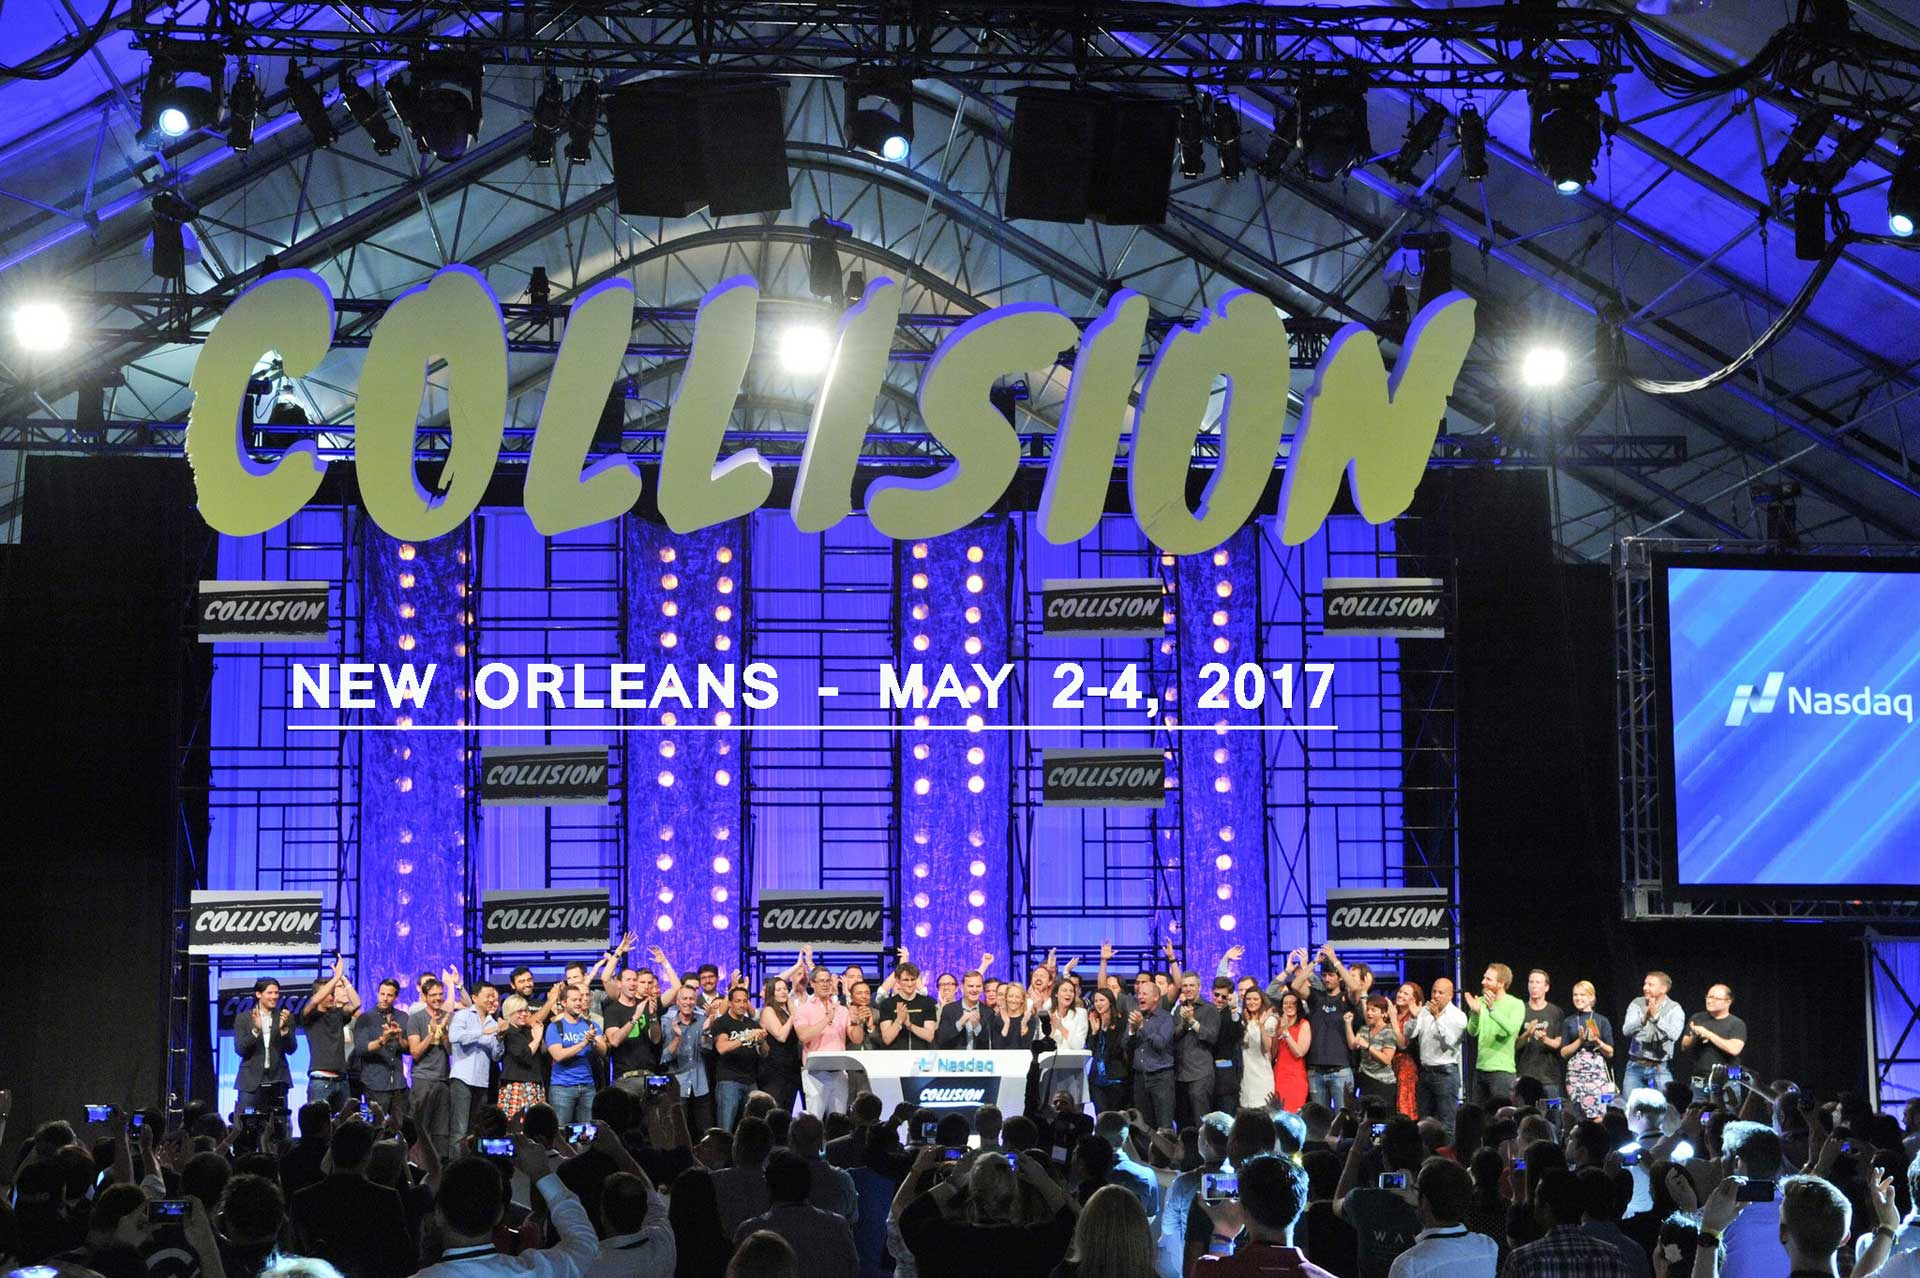 Collision Tech Conference New Orleans 2017